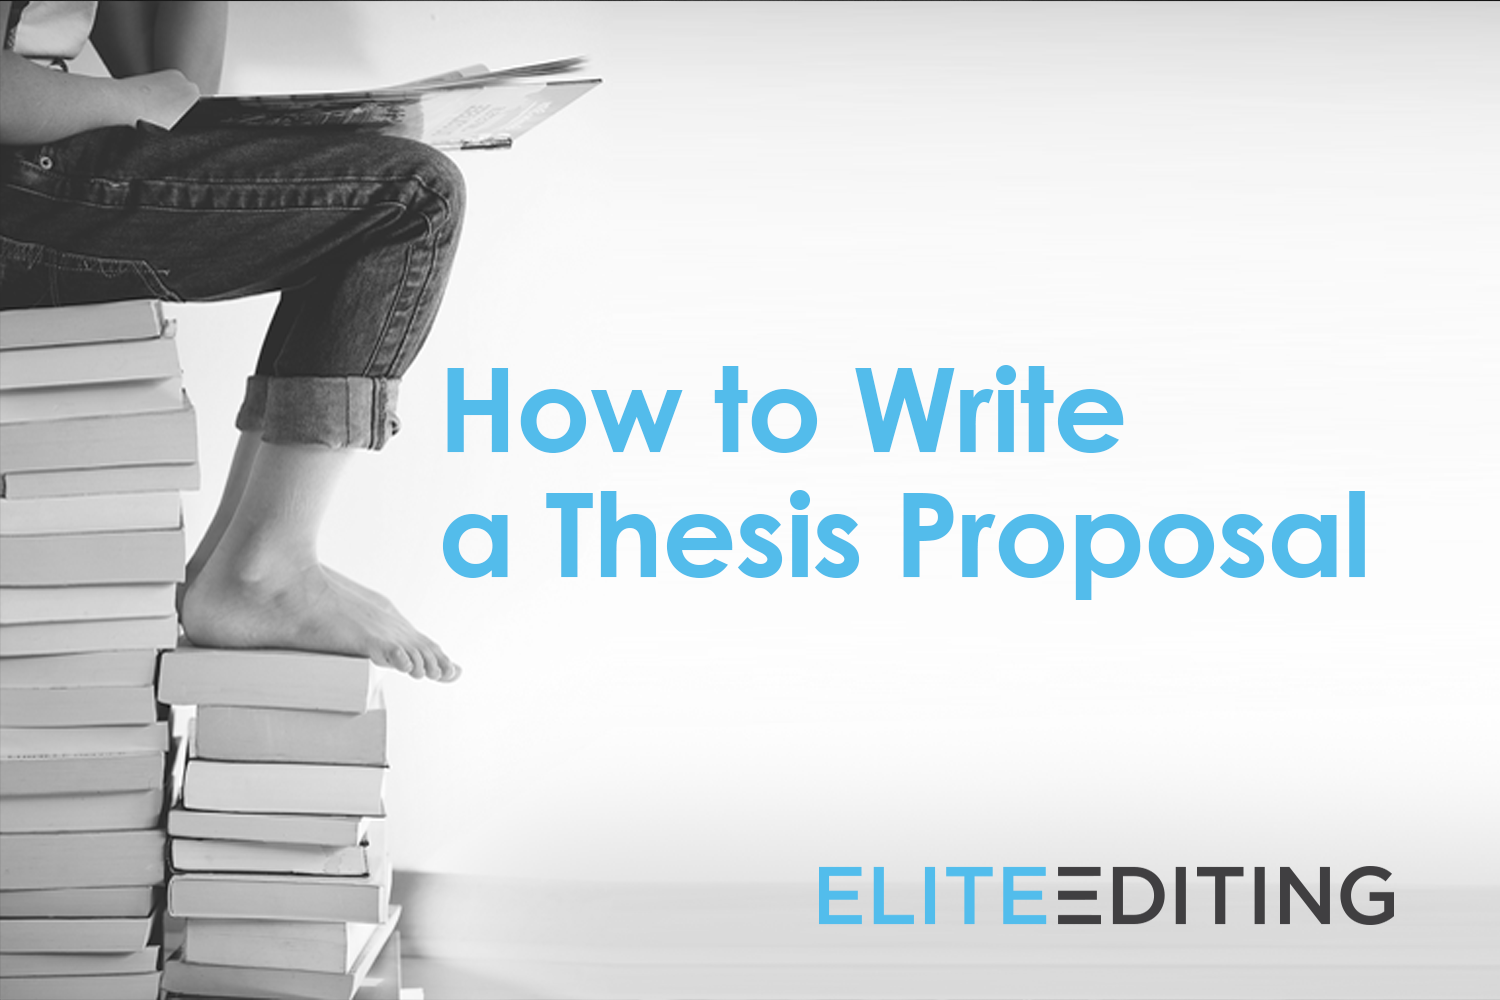 to write a thesis proposal How do you create a research proposal how do you know what it should include the style and length of your thesis proposal will vary depending on your school's requirements, but the fundamentals will always be the same, and those are what we're going to cover here.